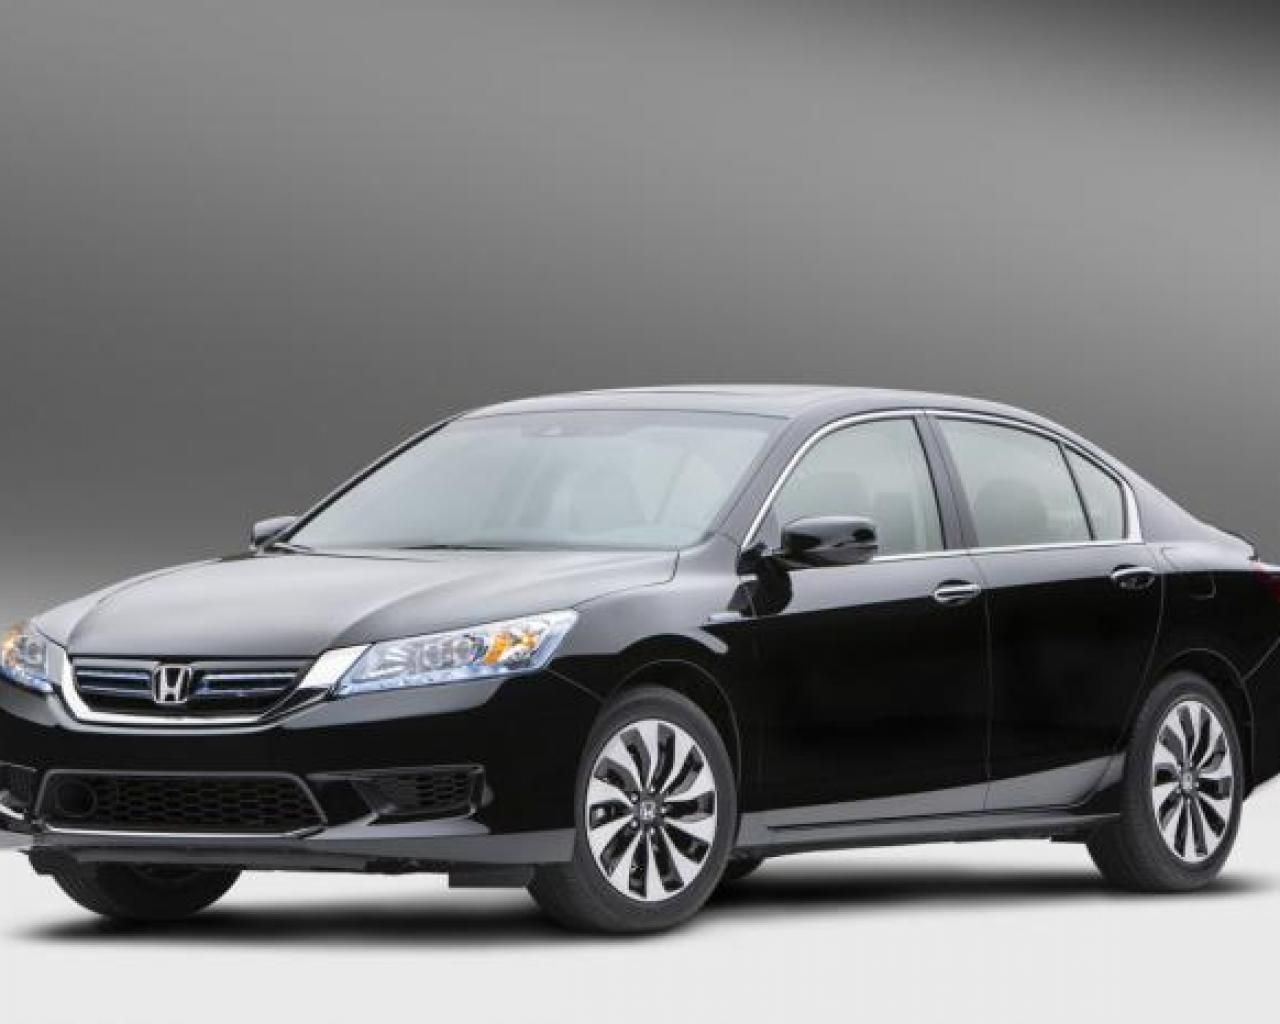 Cars HD Wallpapers 2014 honda accord, Honda accord